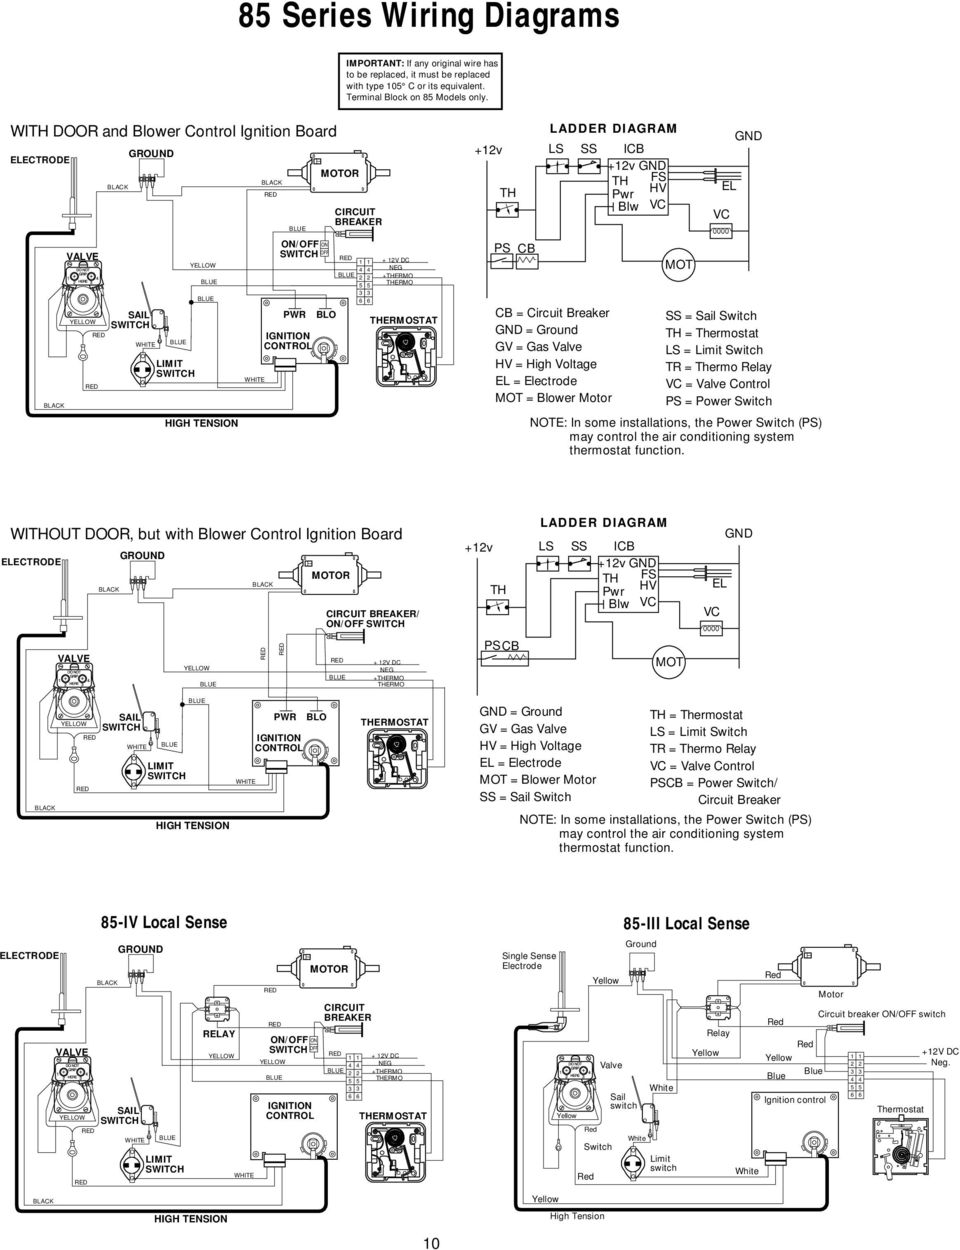 Atwood Service Department Introduction Pdf Fenwal Ignition Module Wiring Diagram Hvac Limit Switch Blue White Pwr Control Blo 4 2 5 3 6 11 85 Series Diagrams